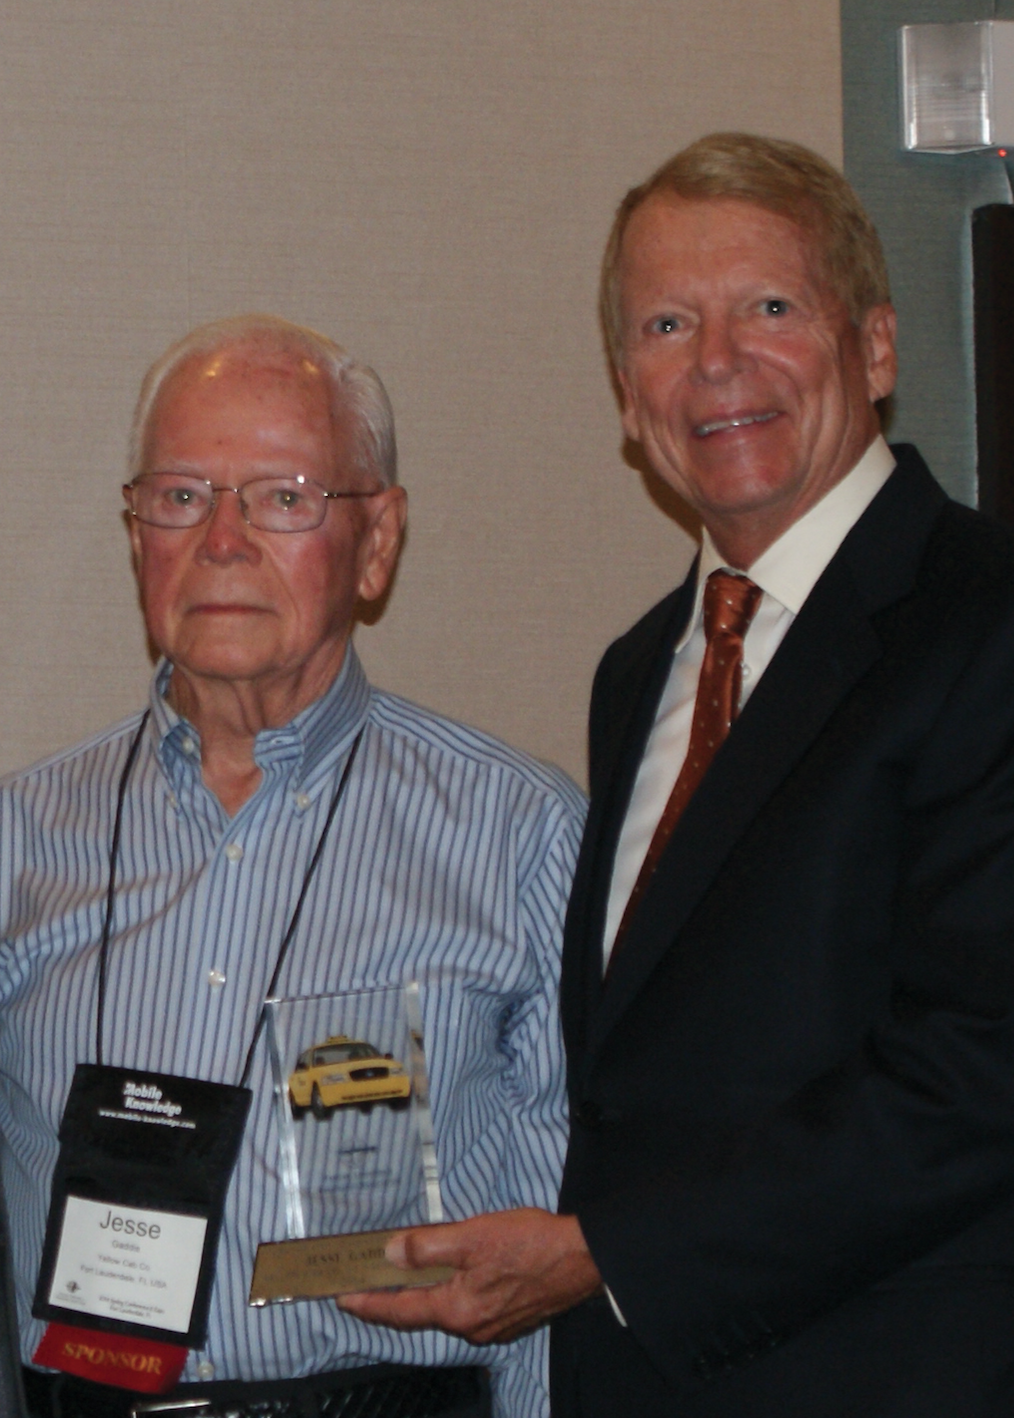 Jesse Gaddis (left) receives TLPA's most prestigious award for his lifetime leadership and contributions to the transportation  industry and the TLPA.